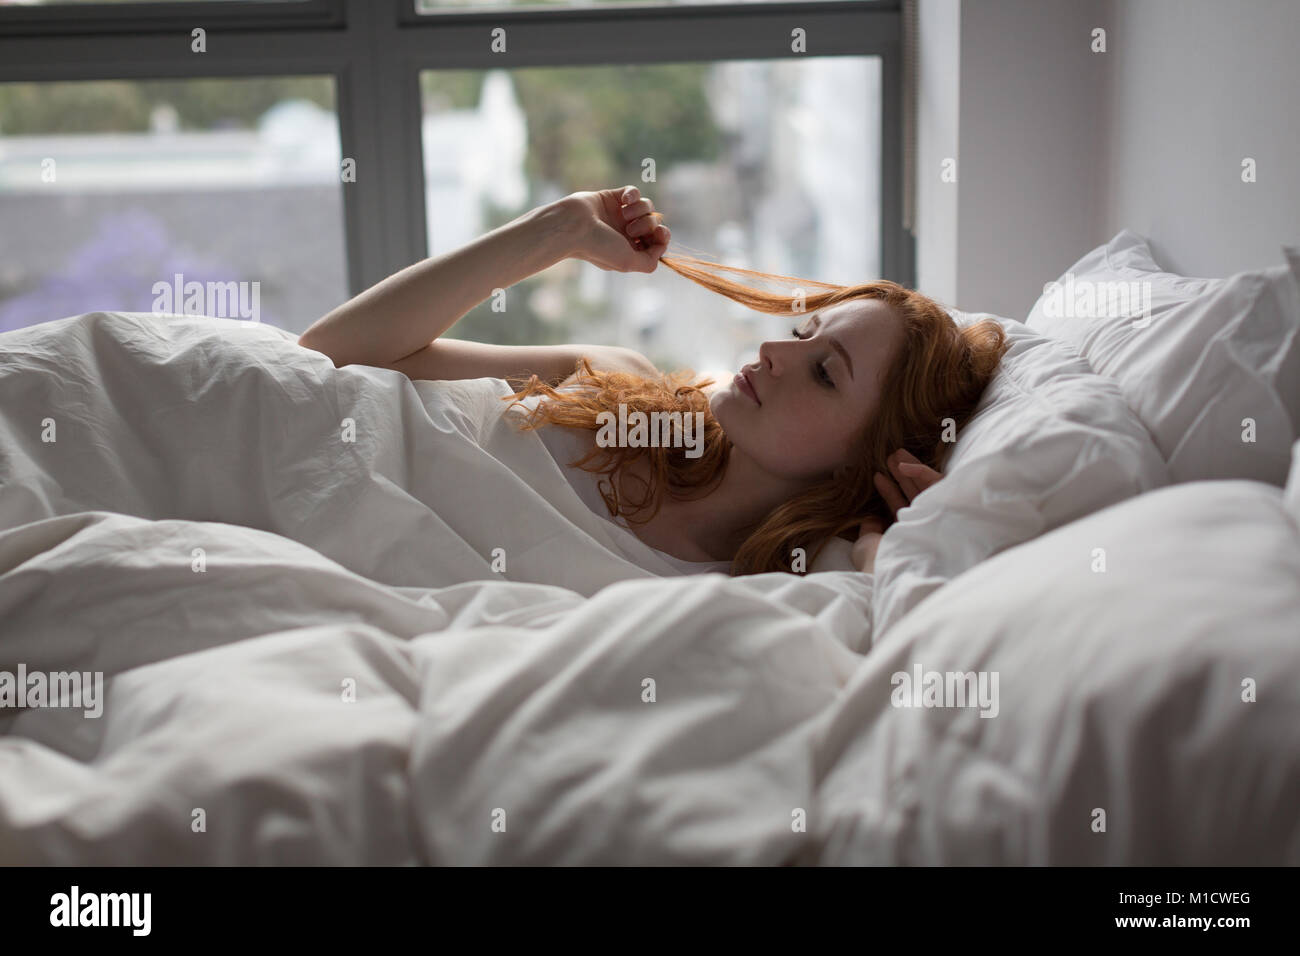 Woman relaxing on bed in bedroom at home - Stock Image